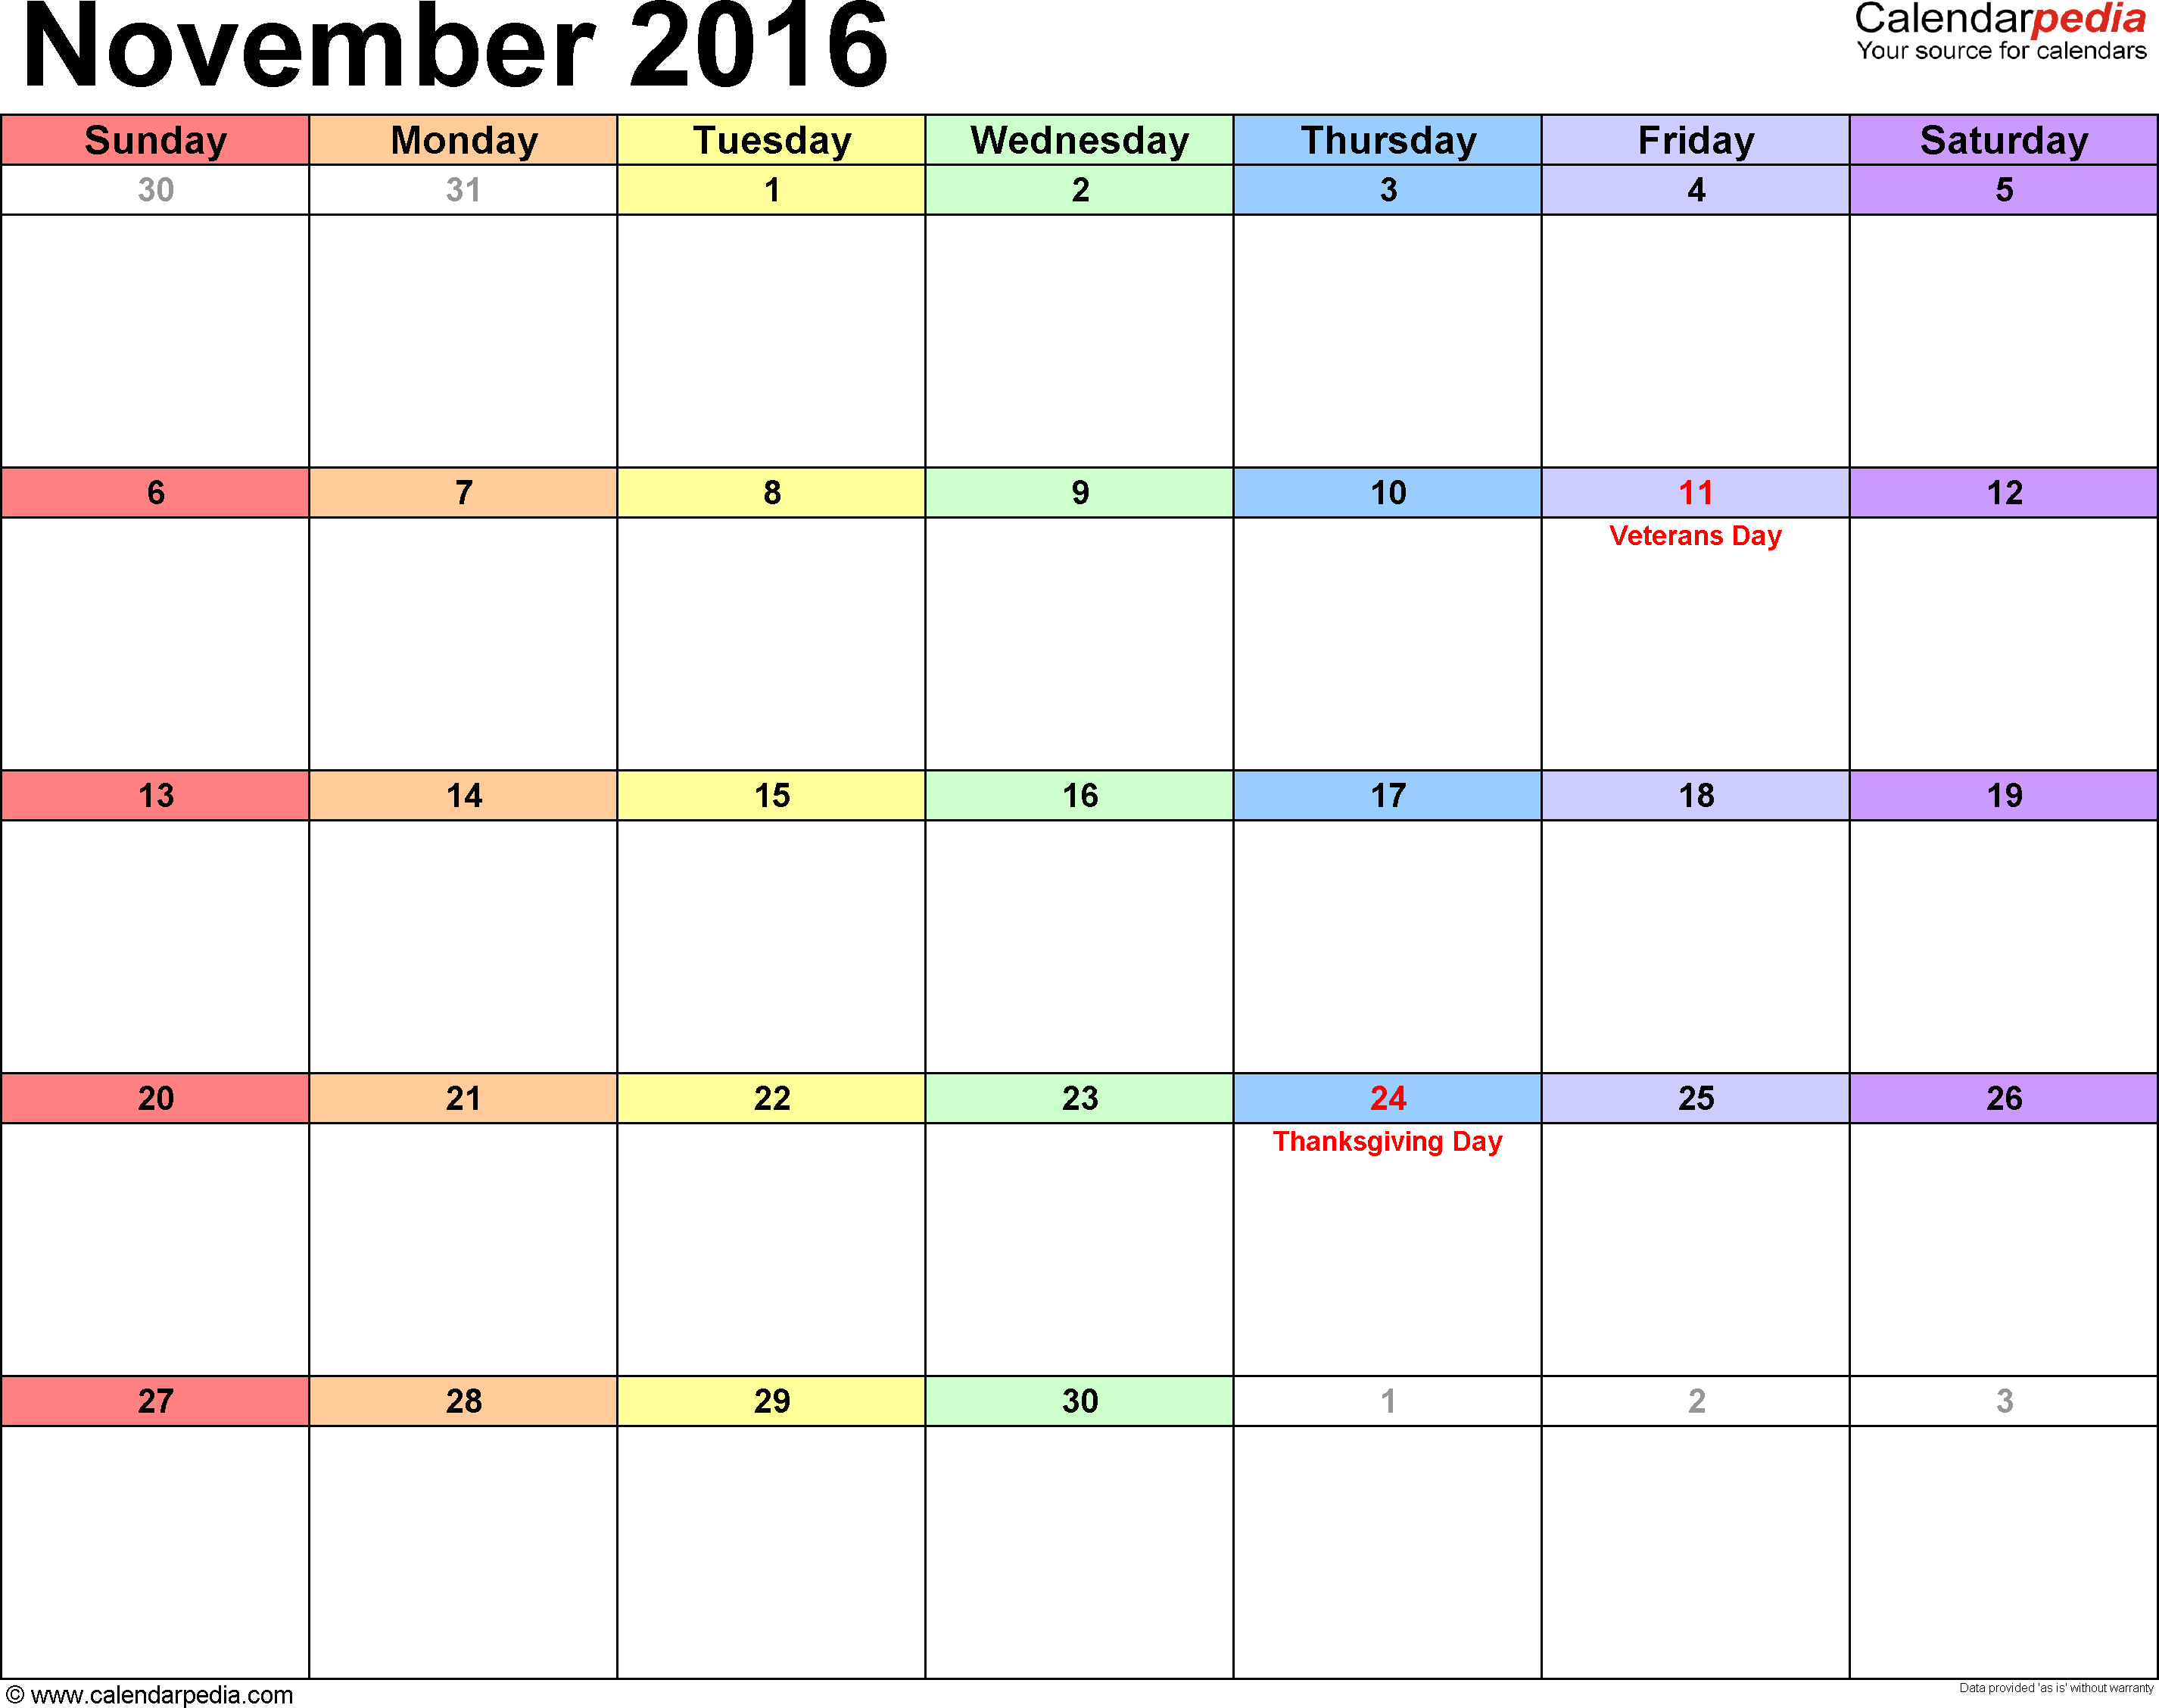 November 2016 Calendars for Word, Excel & PDF